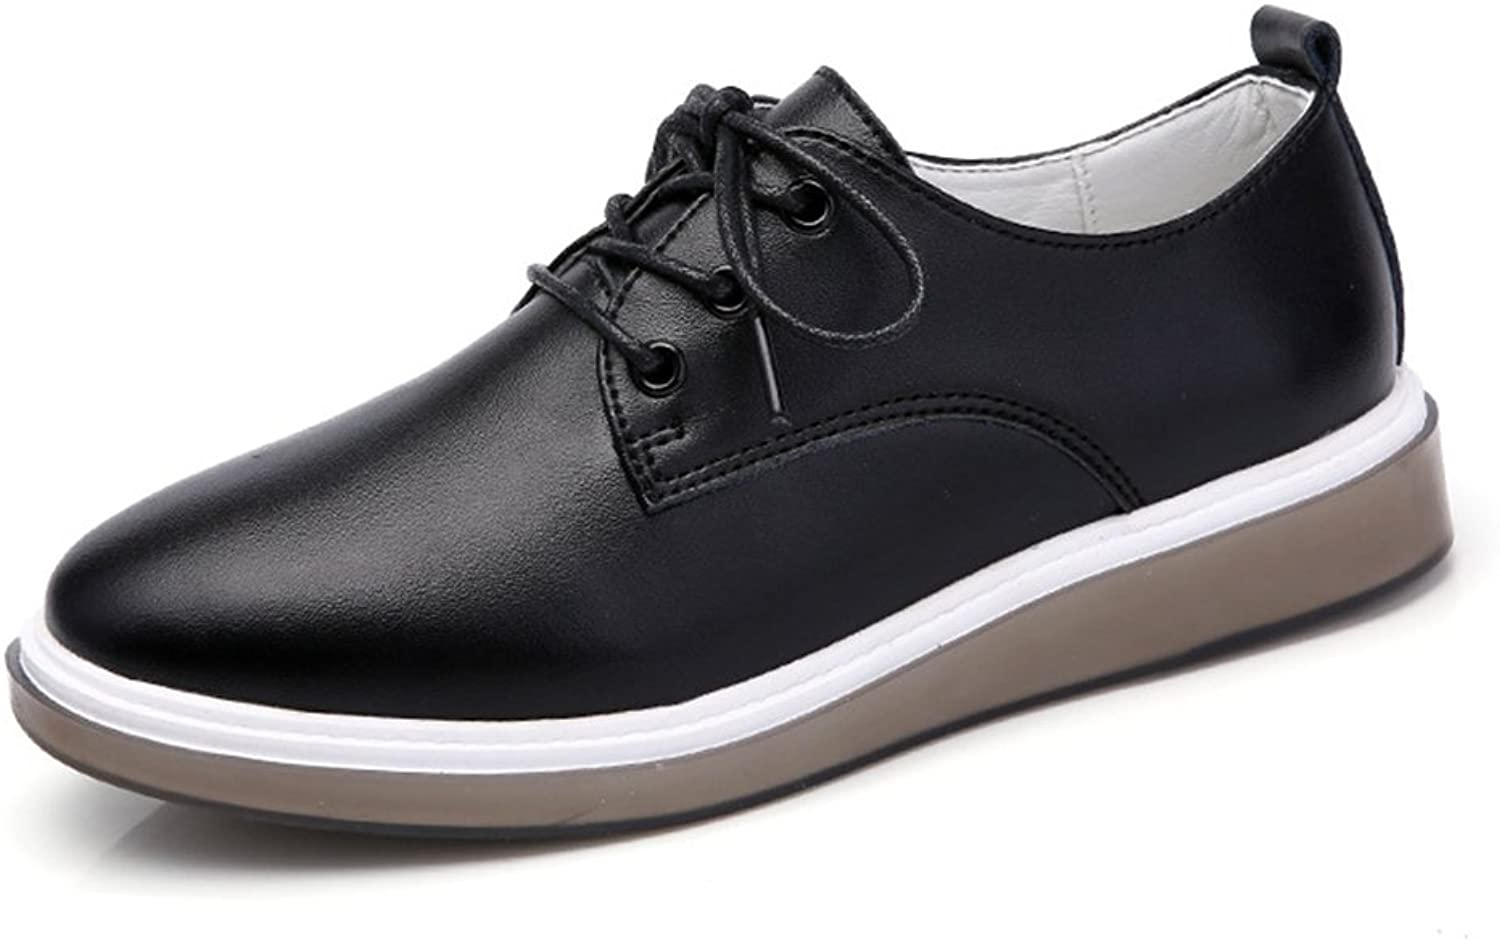 T-JULY Women's Retro Oxfords shoes - Comfy Platform Lace-up Round Toe Casual shoes